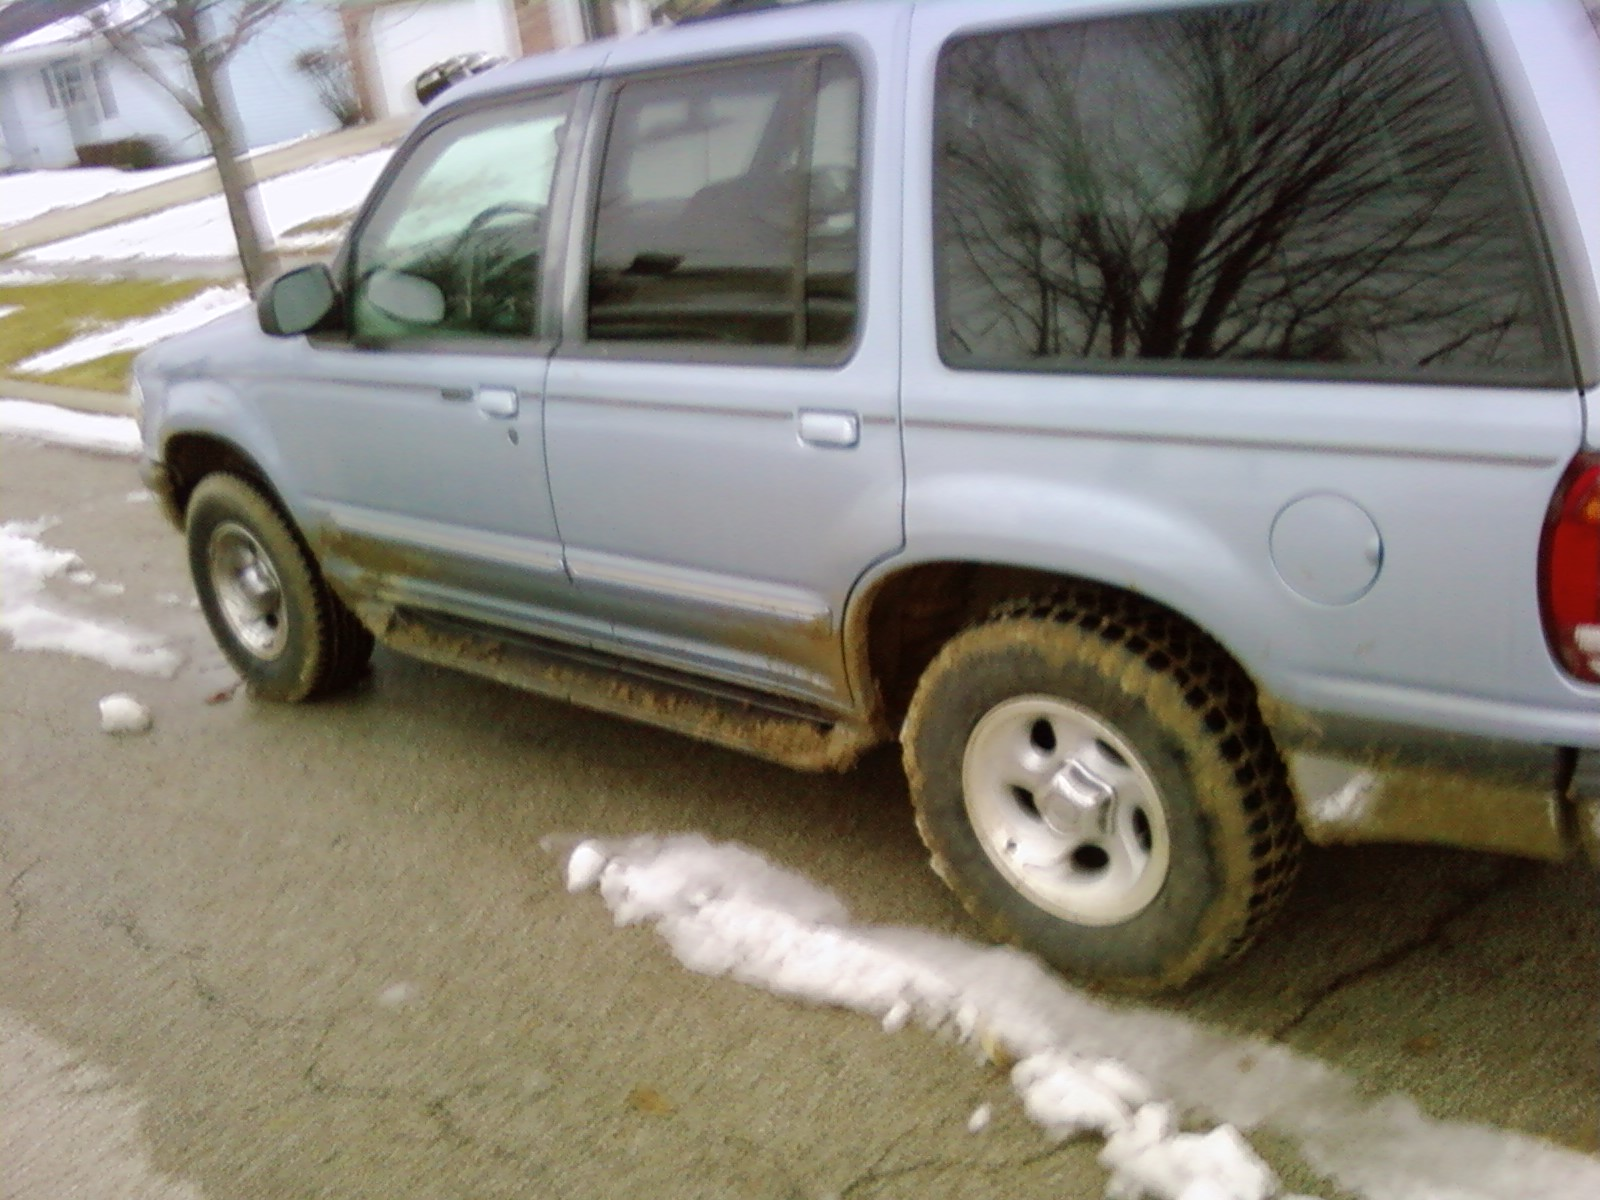 2006 ford ranger 4 wheel drive problems autos post for 1997 ford explorer window problems